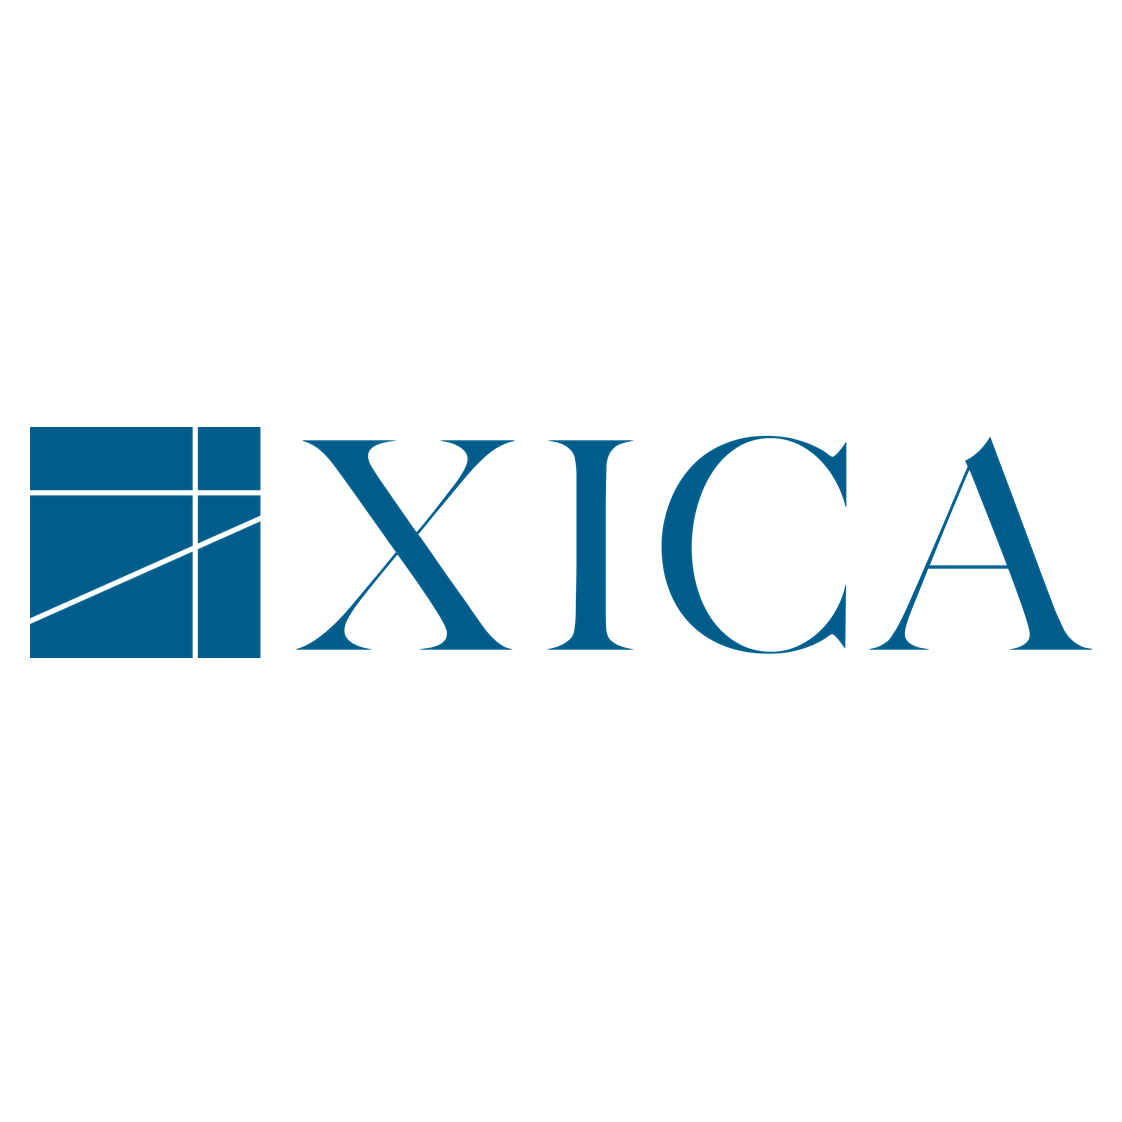 XICA CO, LTD.